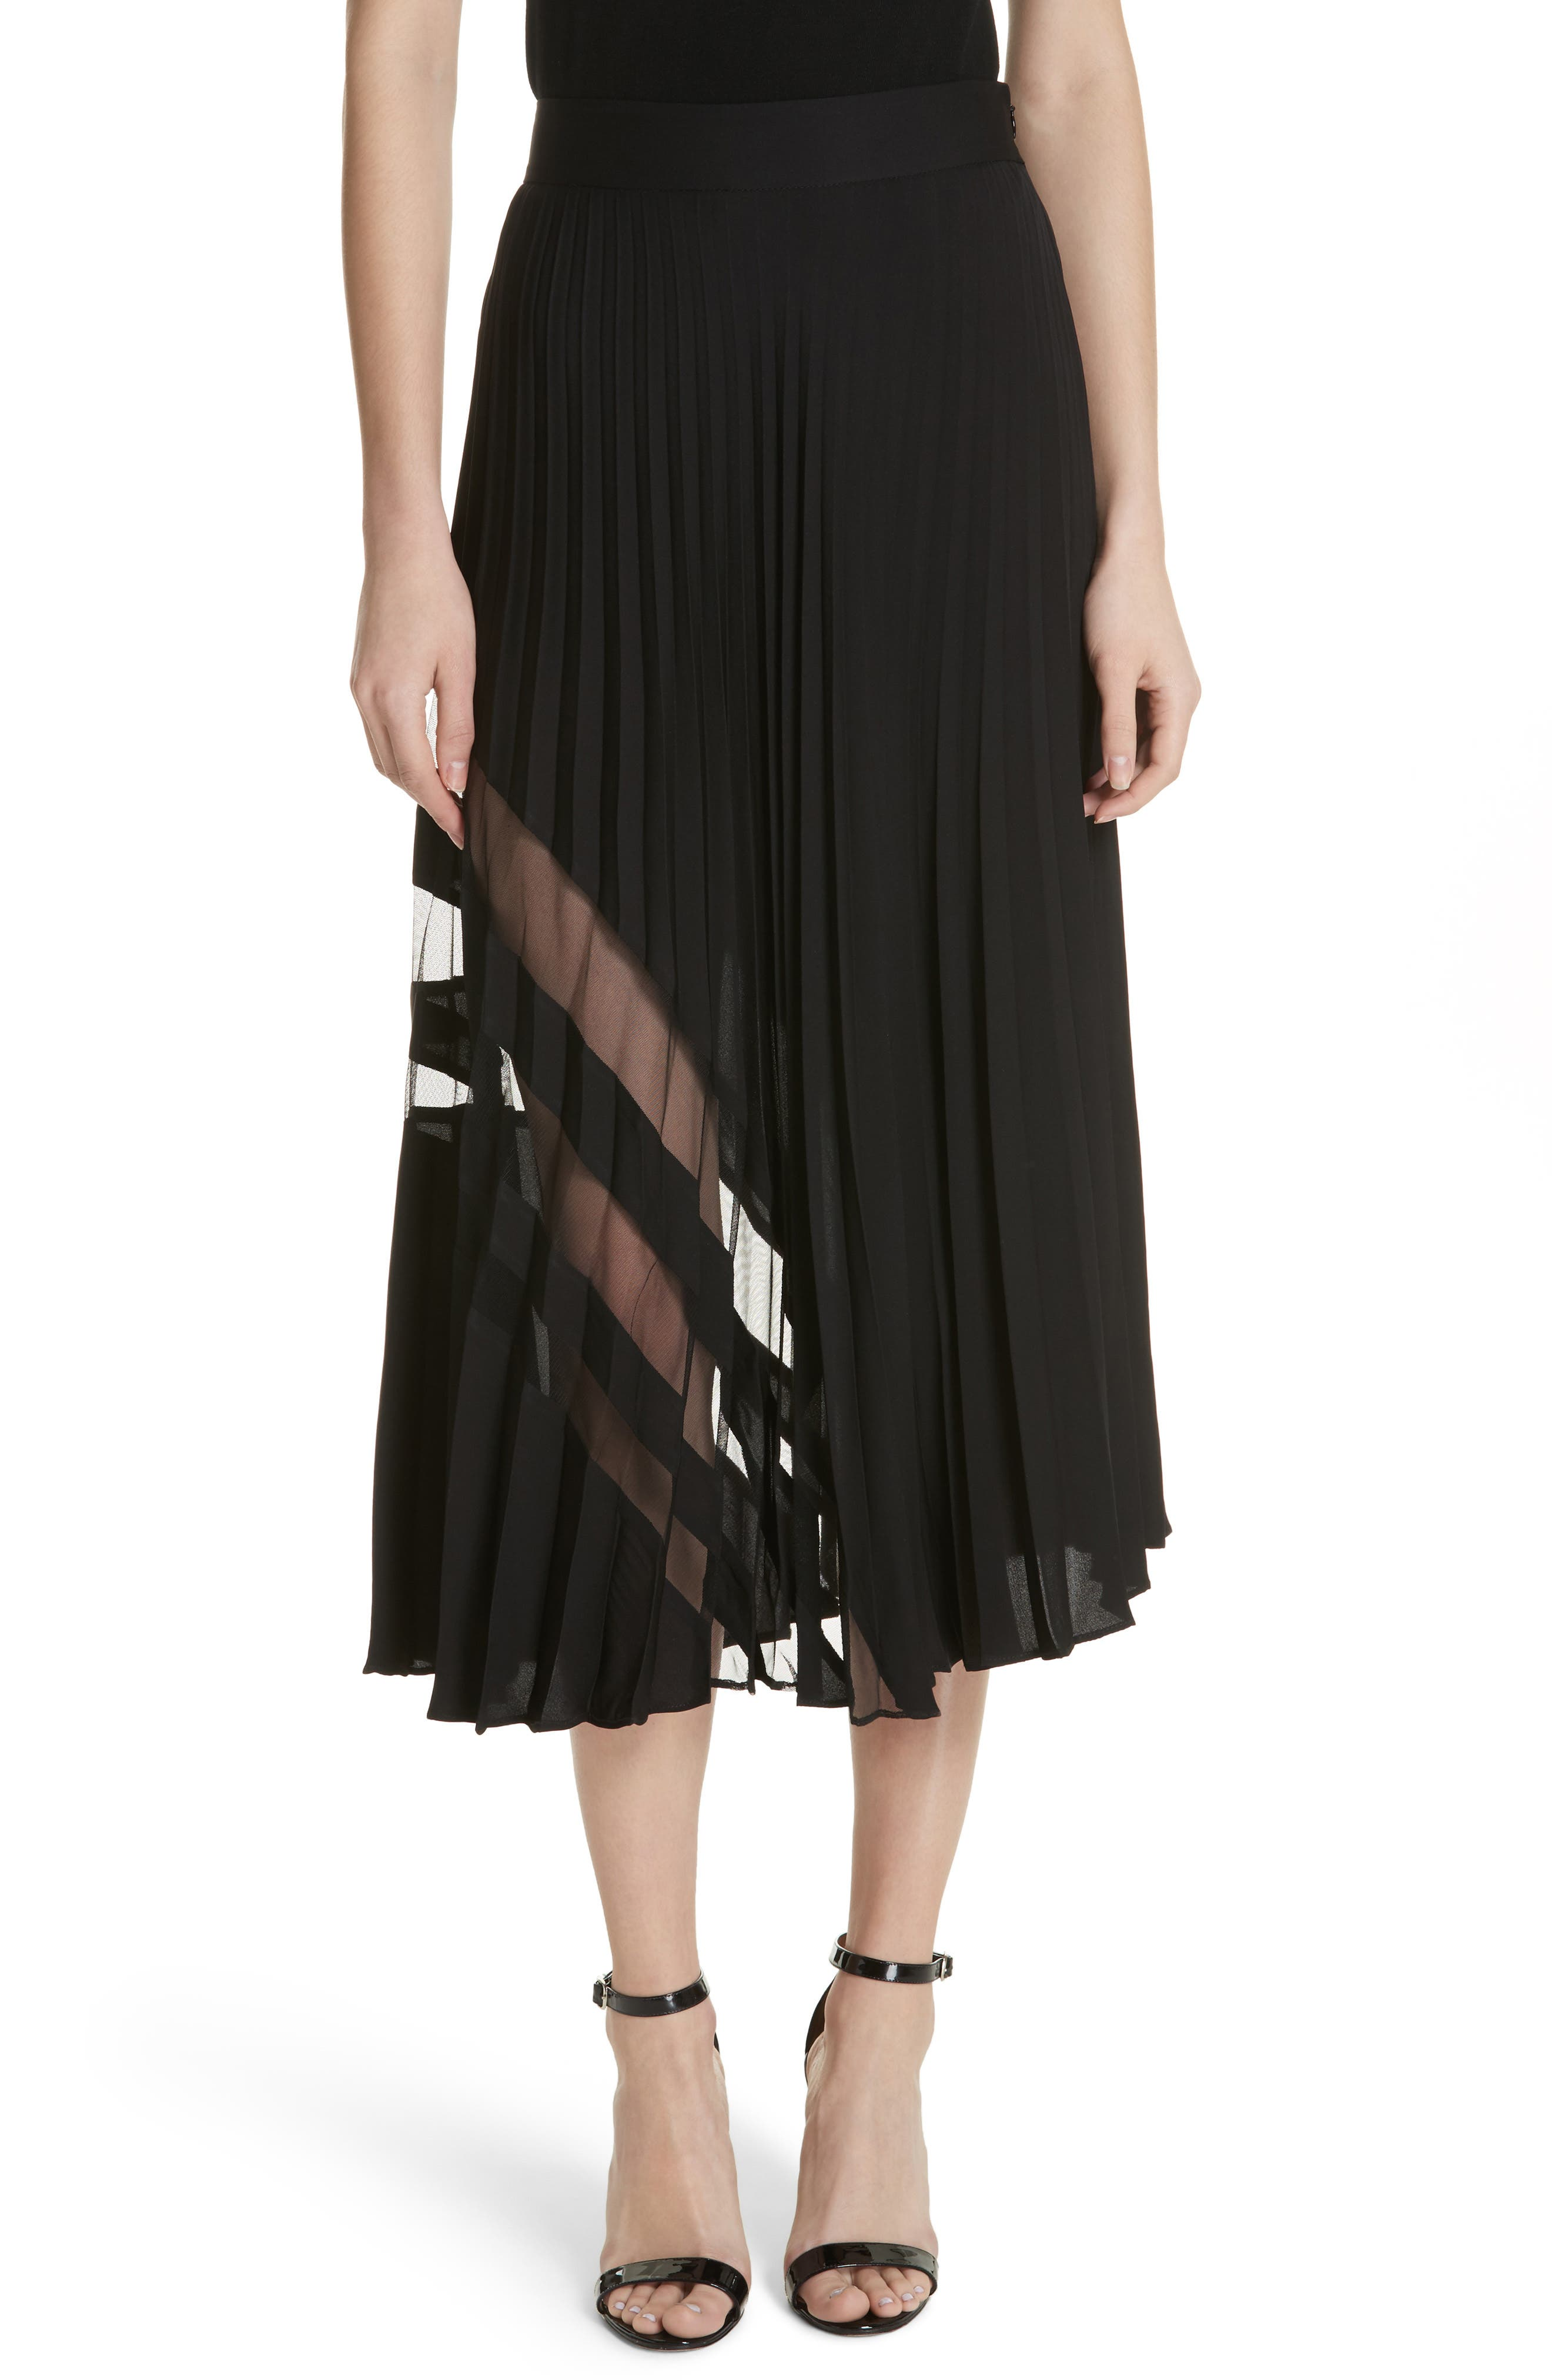 MILLY, Pleated Maxi Skirt, Main thumbnail 1, color, 007